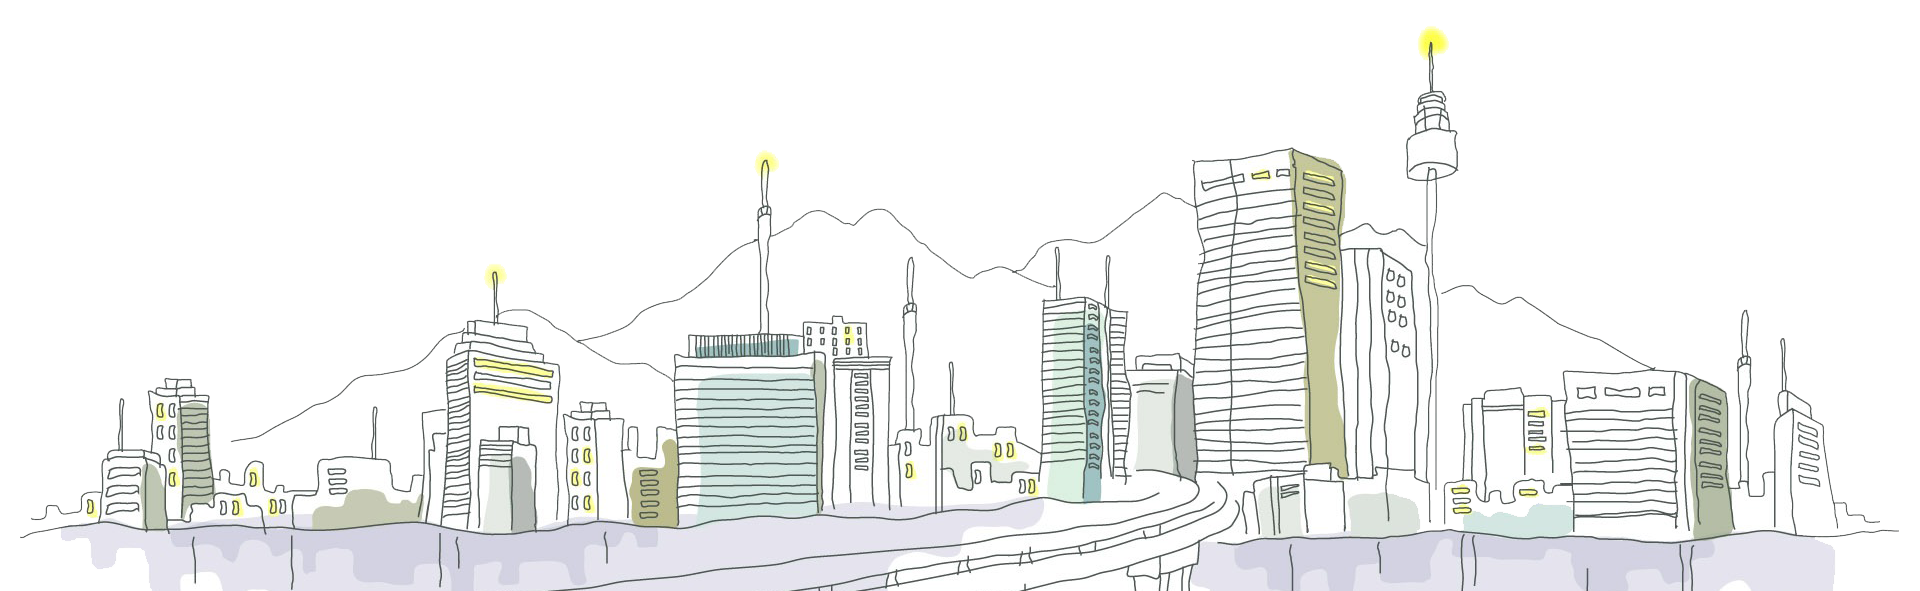 svg free download Urban drawing downtown.  k resolution travel